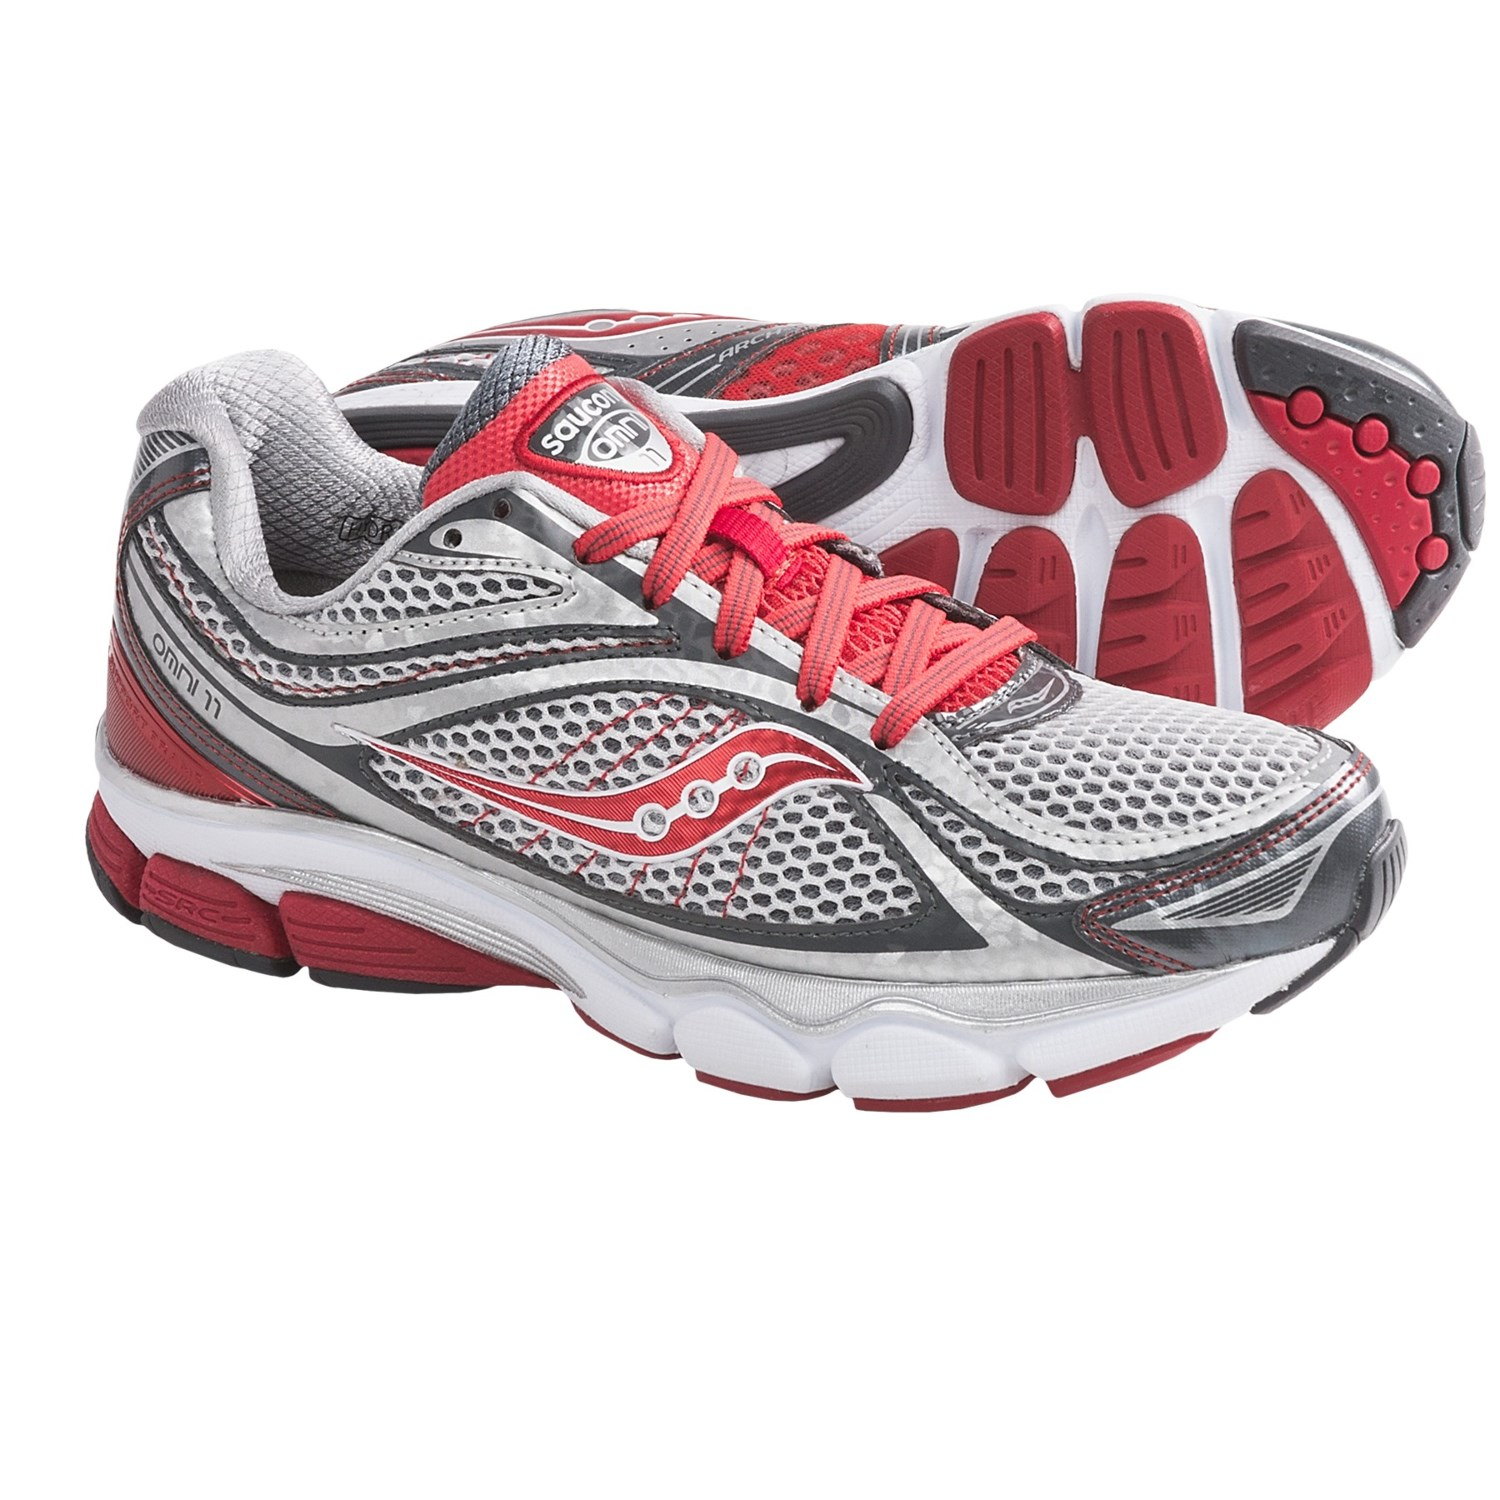 Saucony ProGrid Omni 11 Running Shoes (For Women) in Silver/Grey/Red